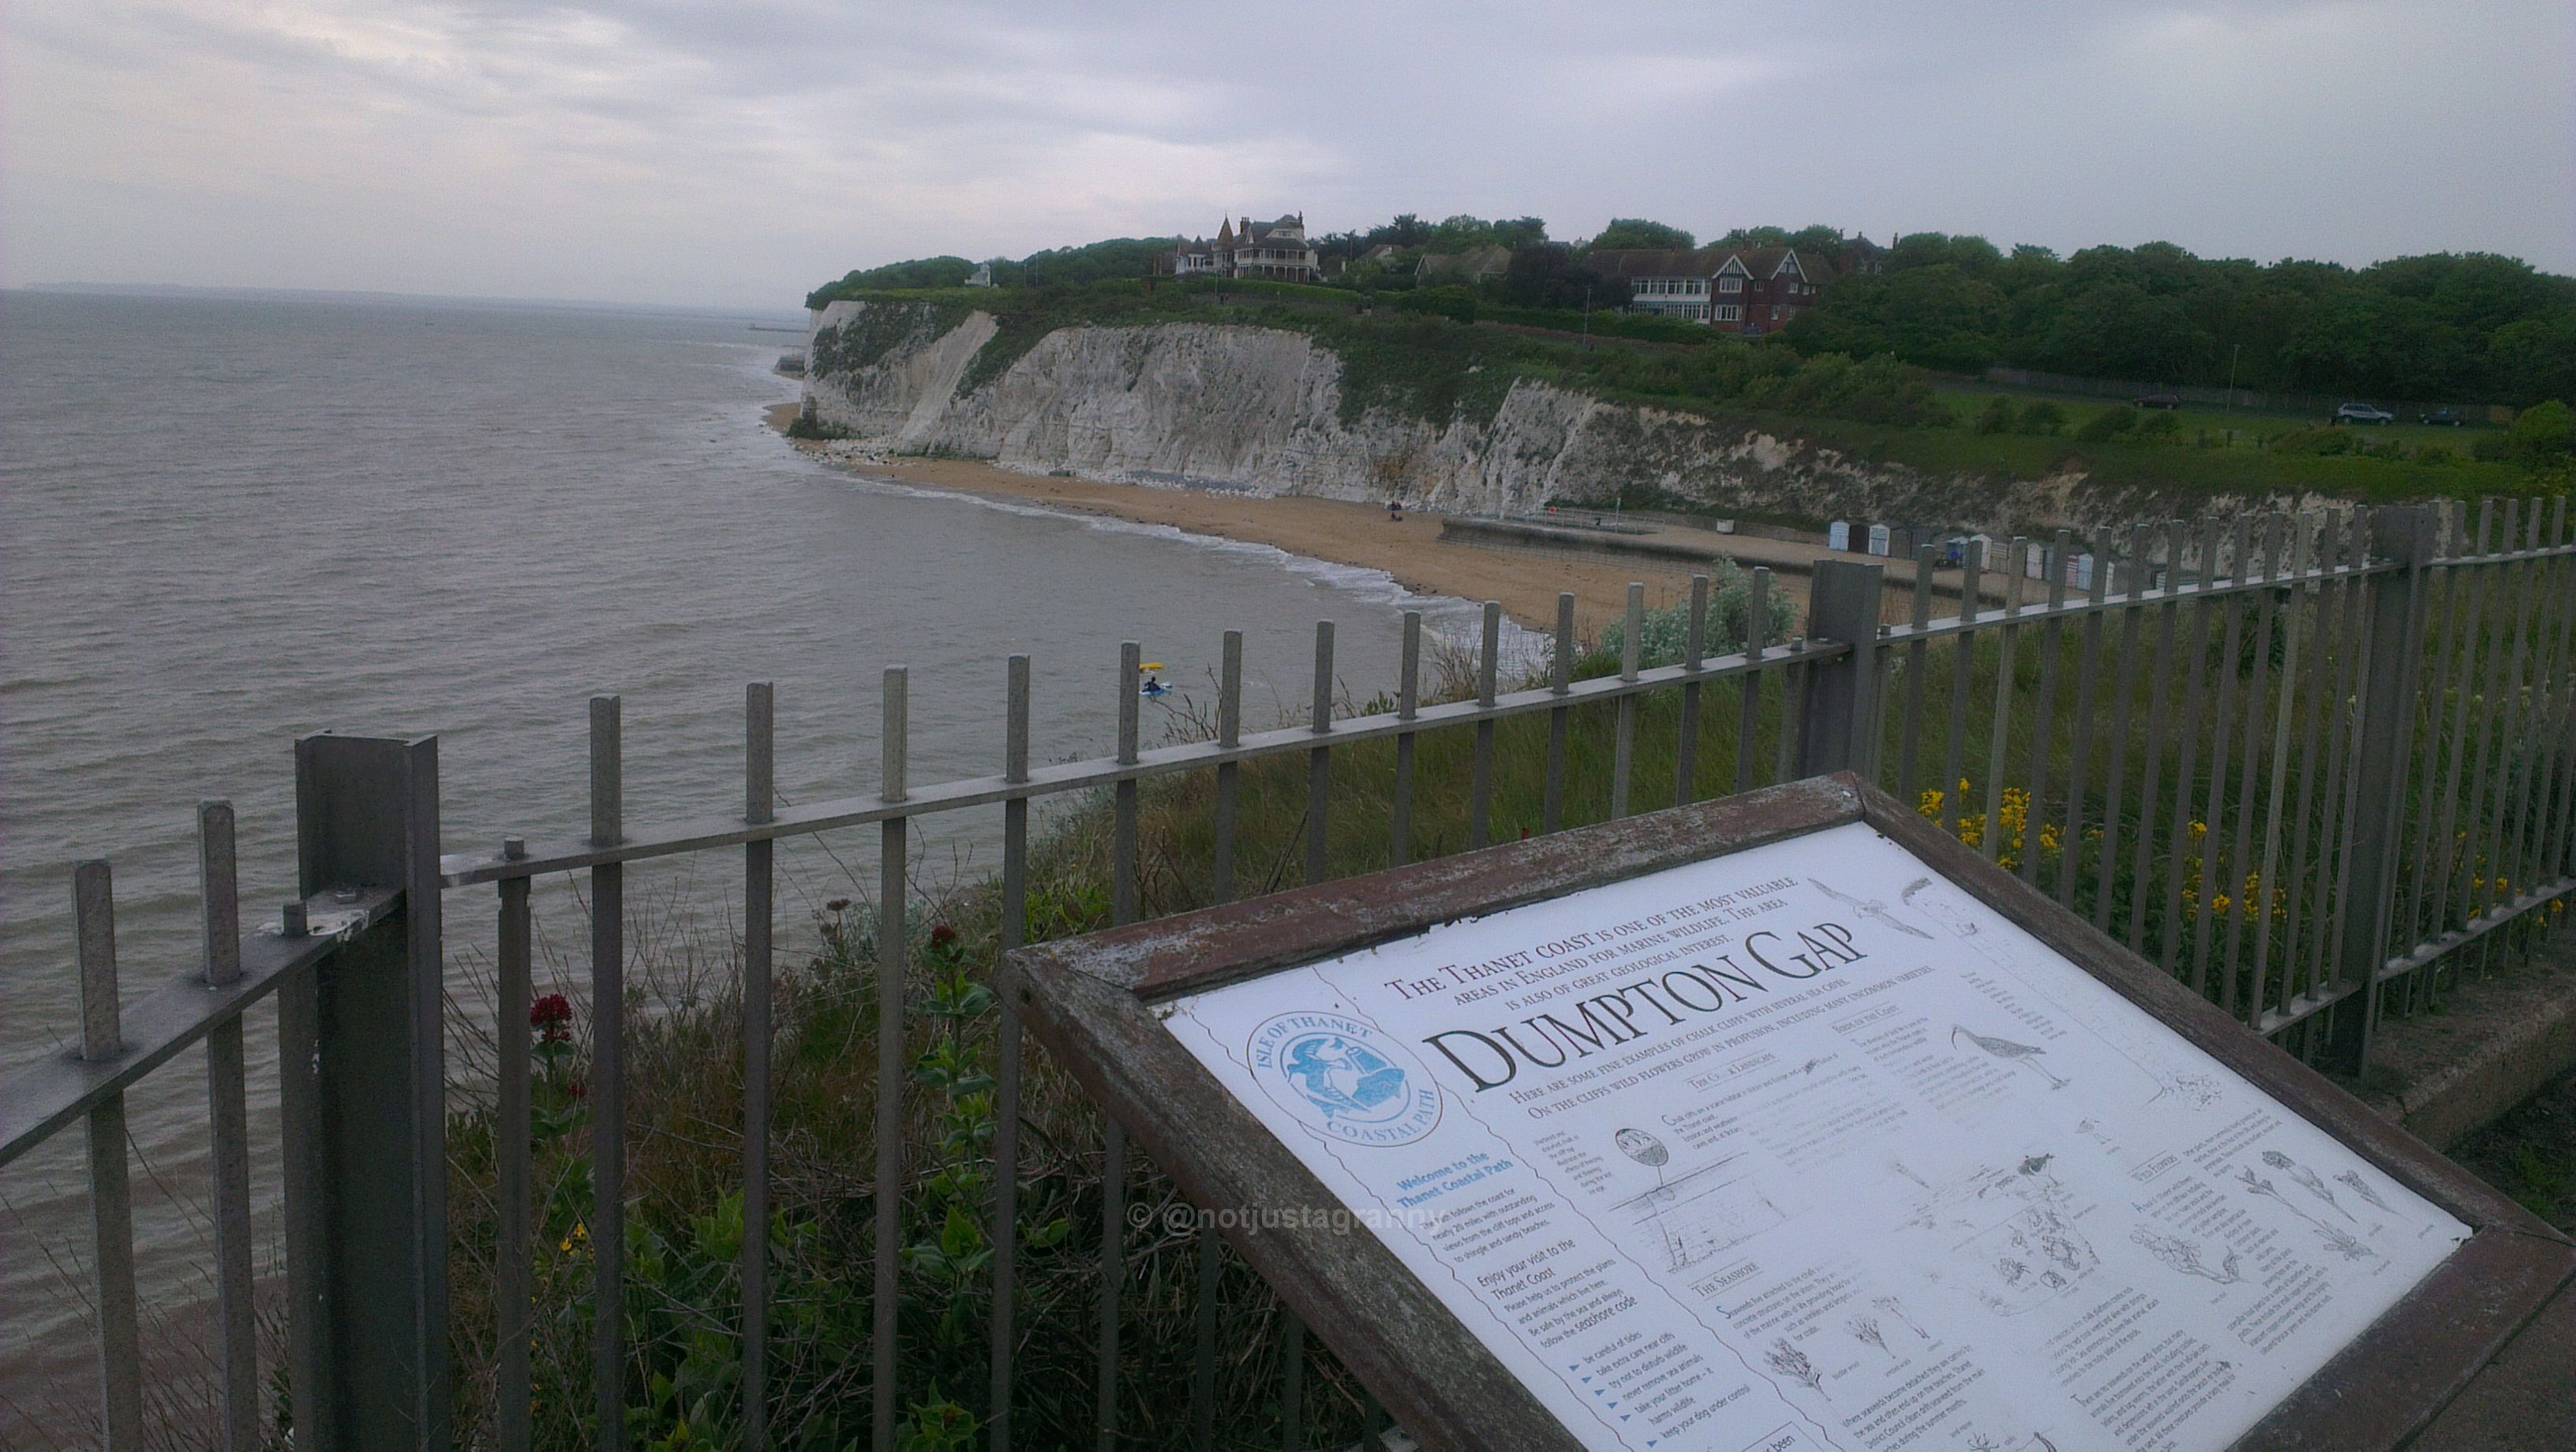 100 walks uk, walk 1000 miles, broadstairs to ramsgate, dumpton gap, isle of thanet